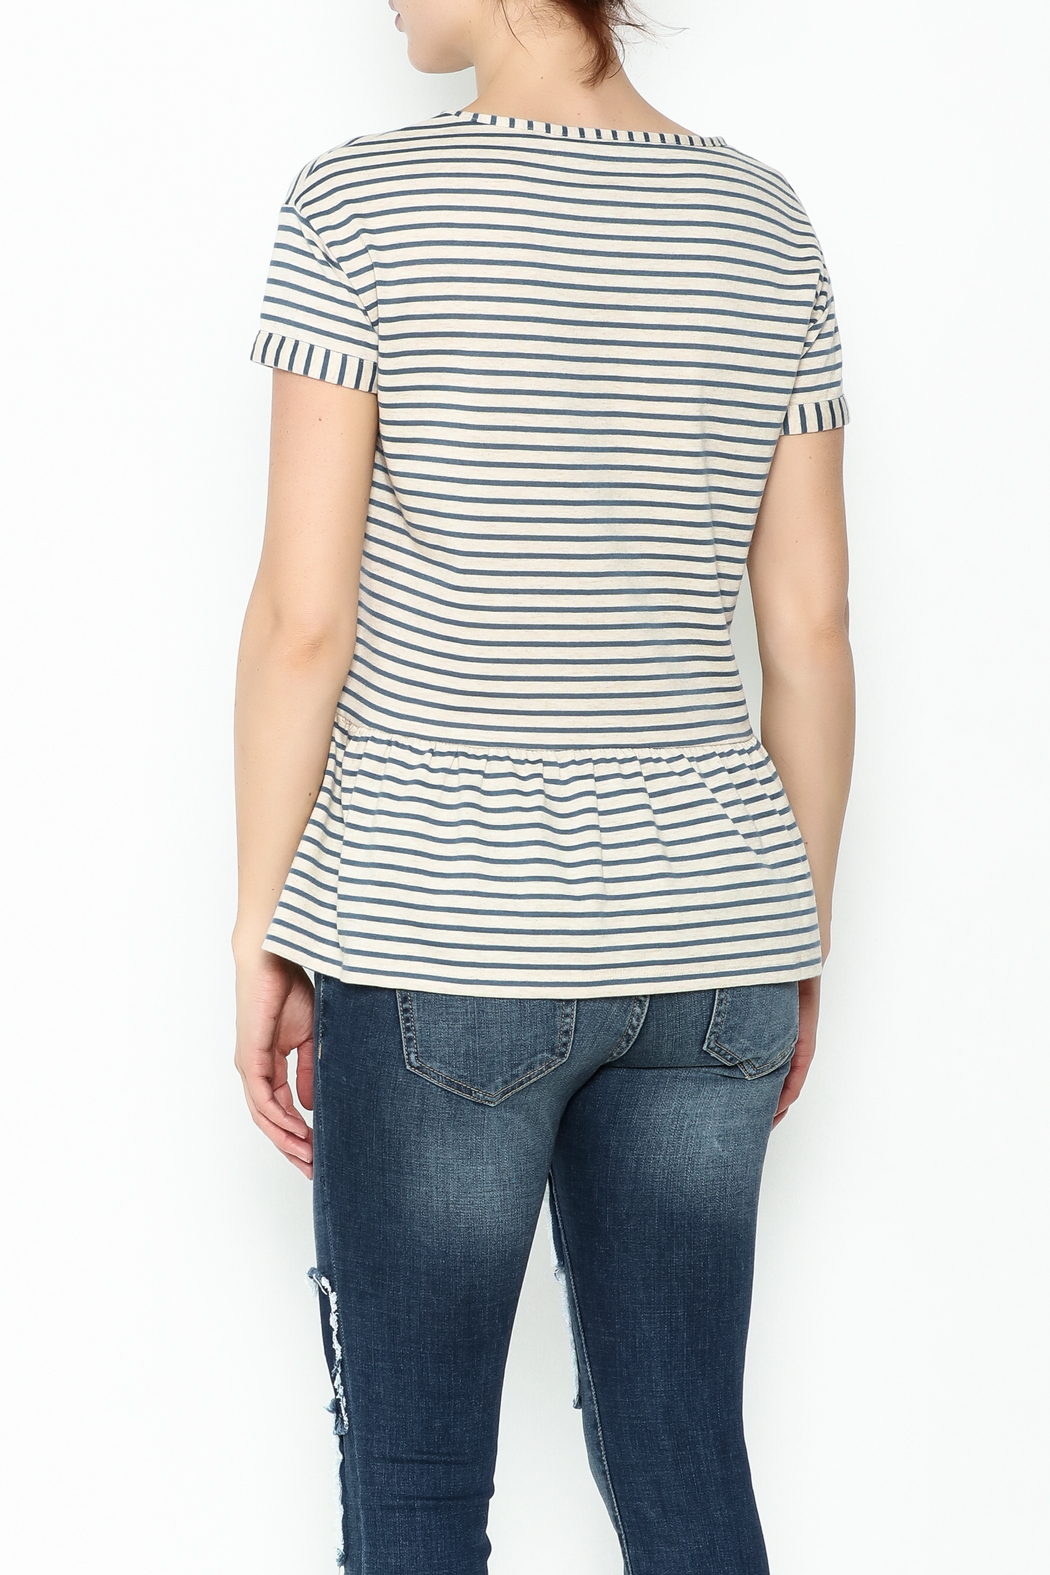 Numph Striped Peplum Top - Back Cropped Image